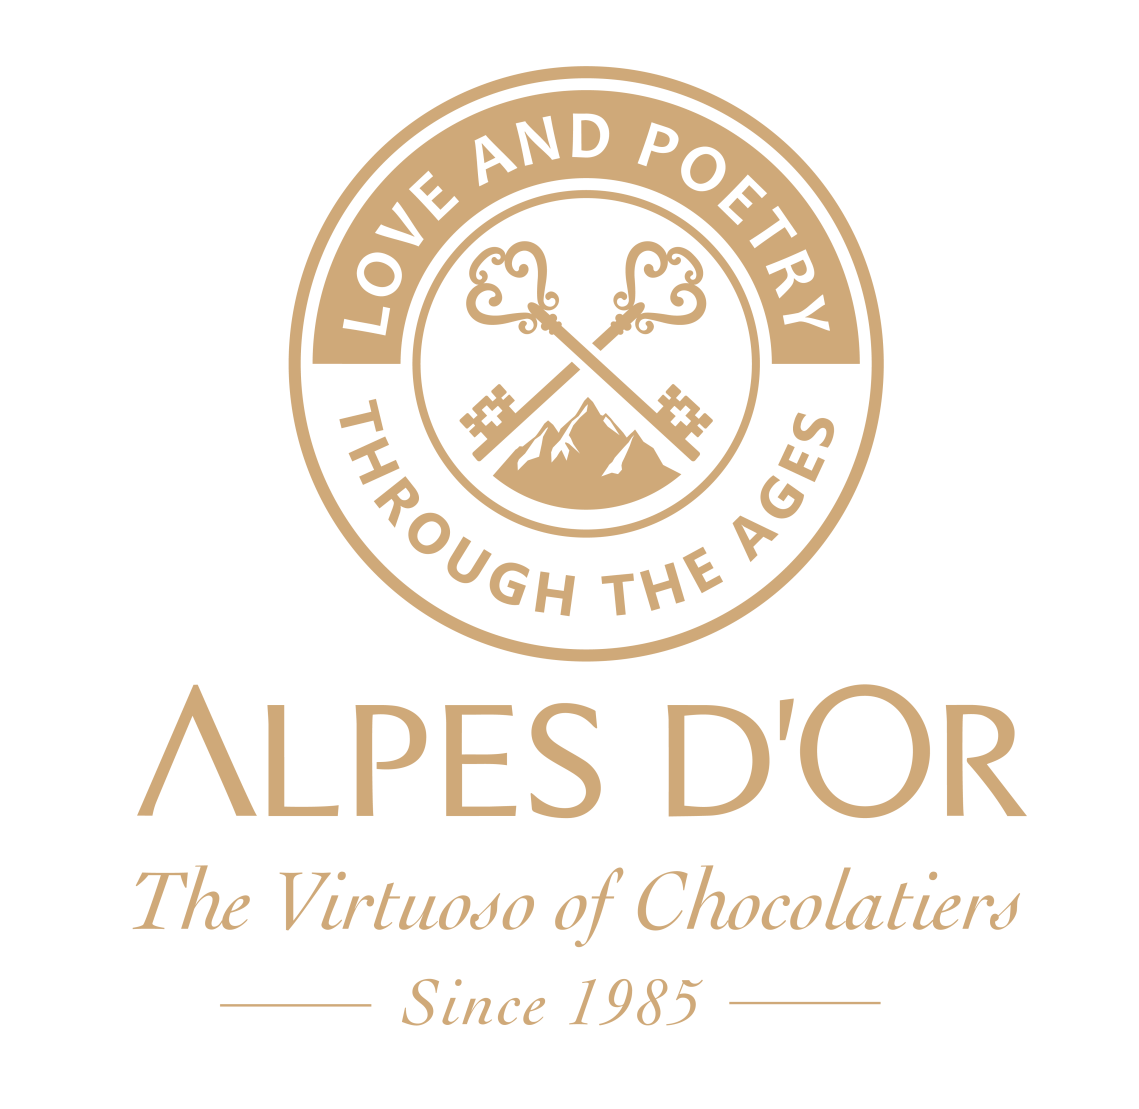 Alpes d'Or∞Æ∆' ´logo-1-01